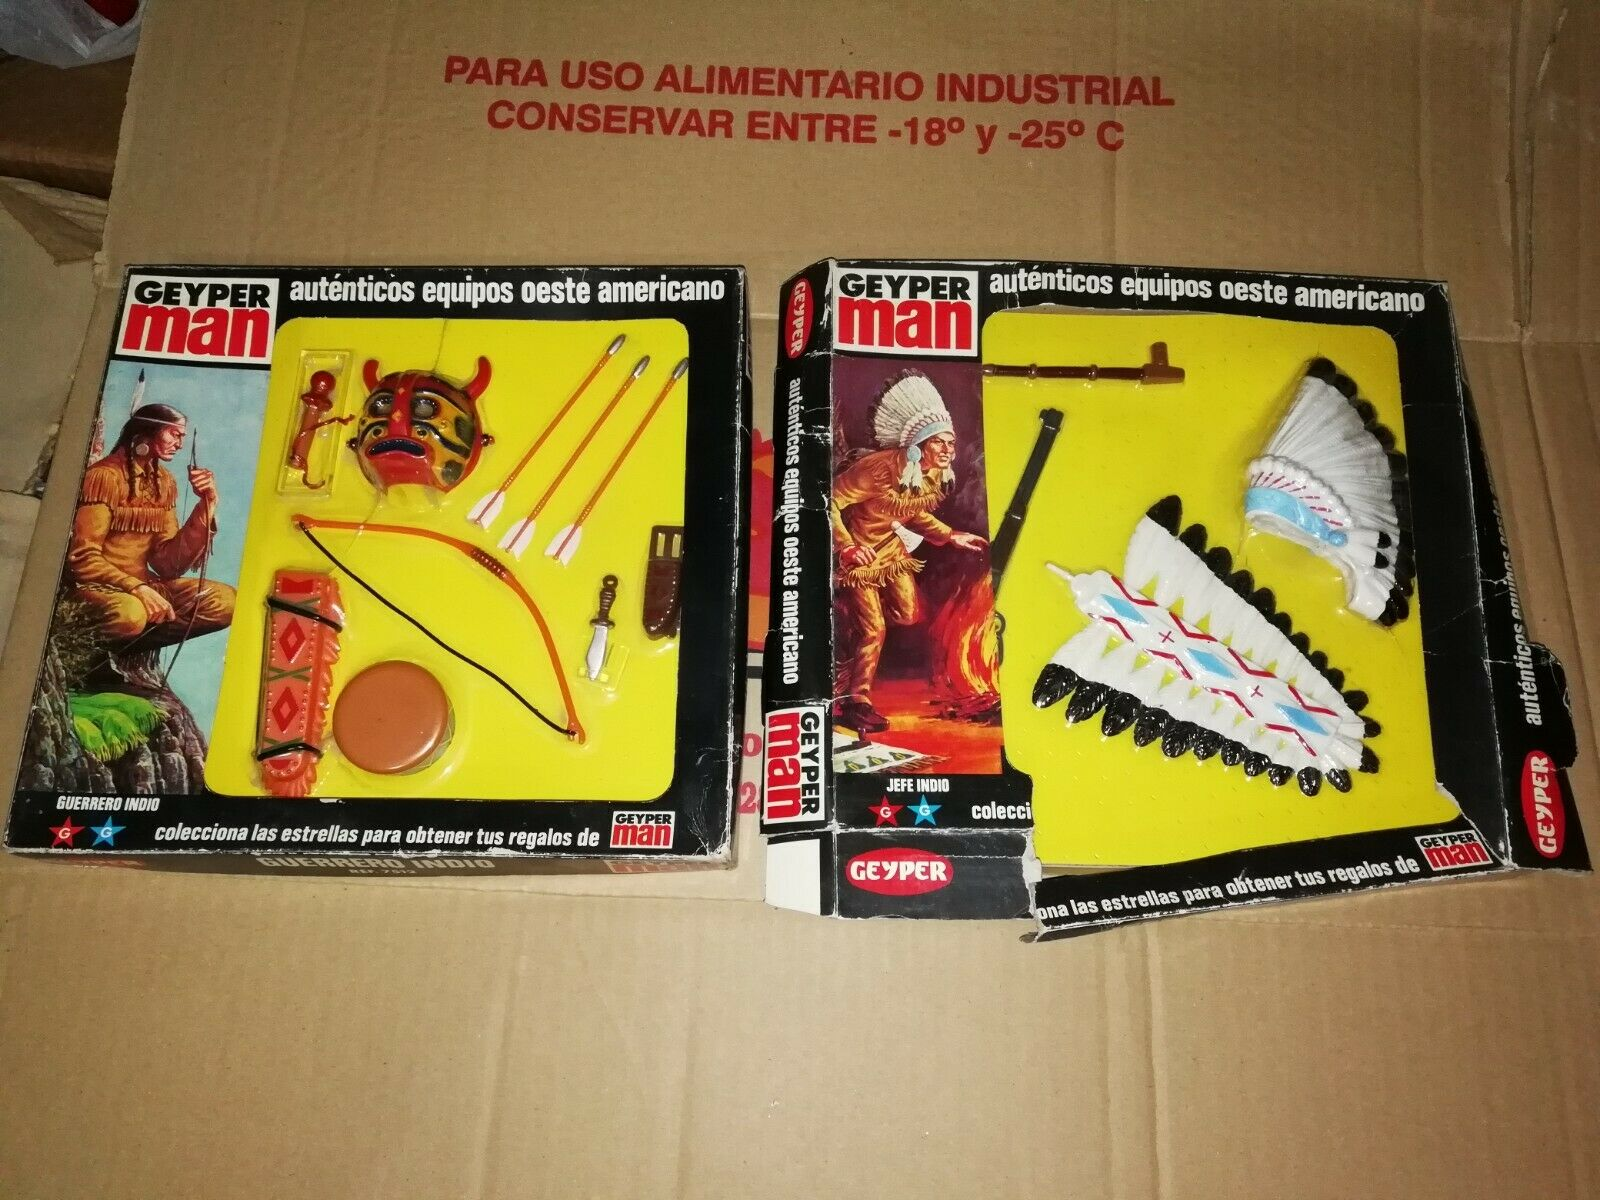 GEYPERMAN ORIGINAL LOTE JEFE Y GUERRERO INDIO NUEVO EN CAJA ACTION MAN INDIAN